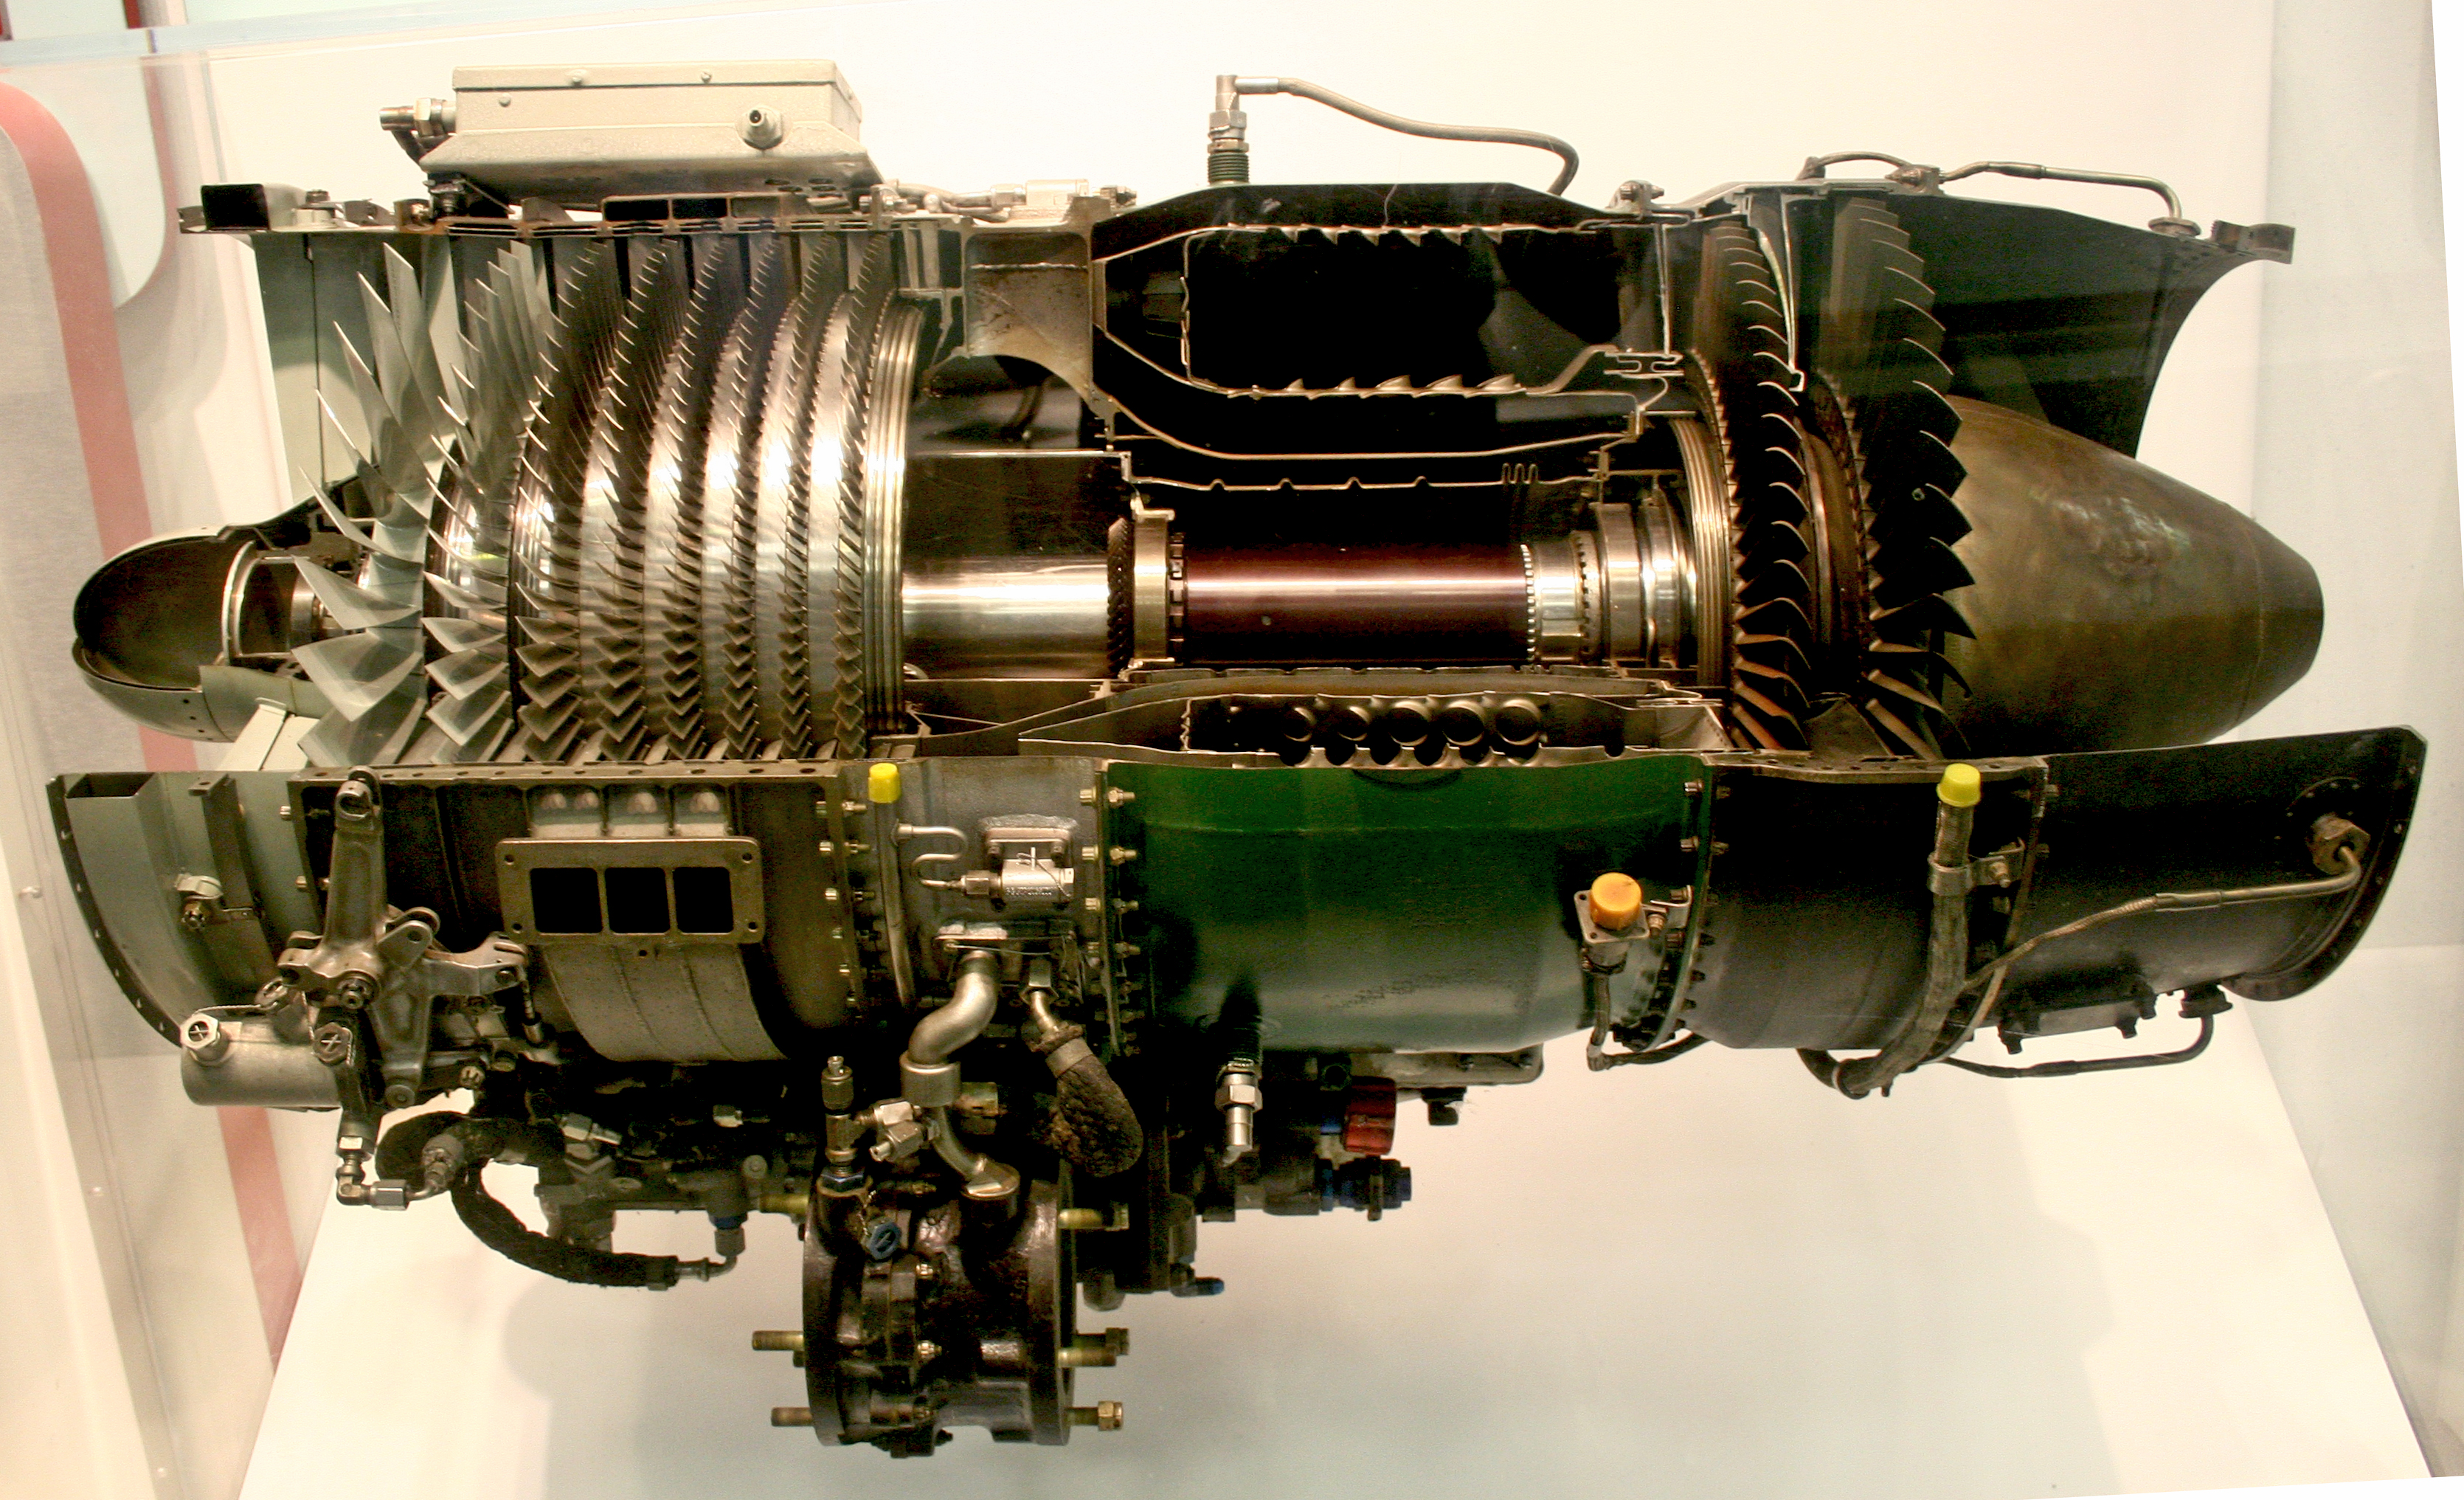 J85_ge_17a_turbojet_engine.jpg